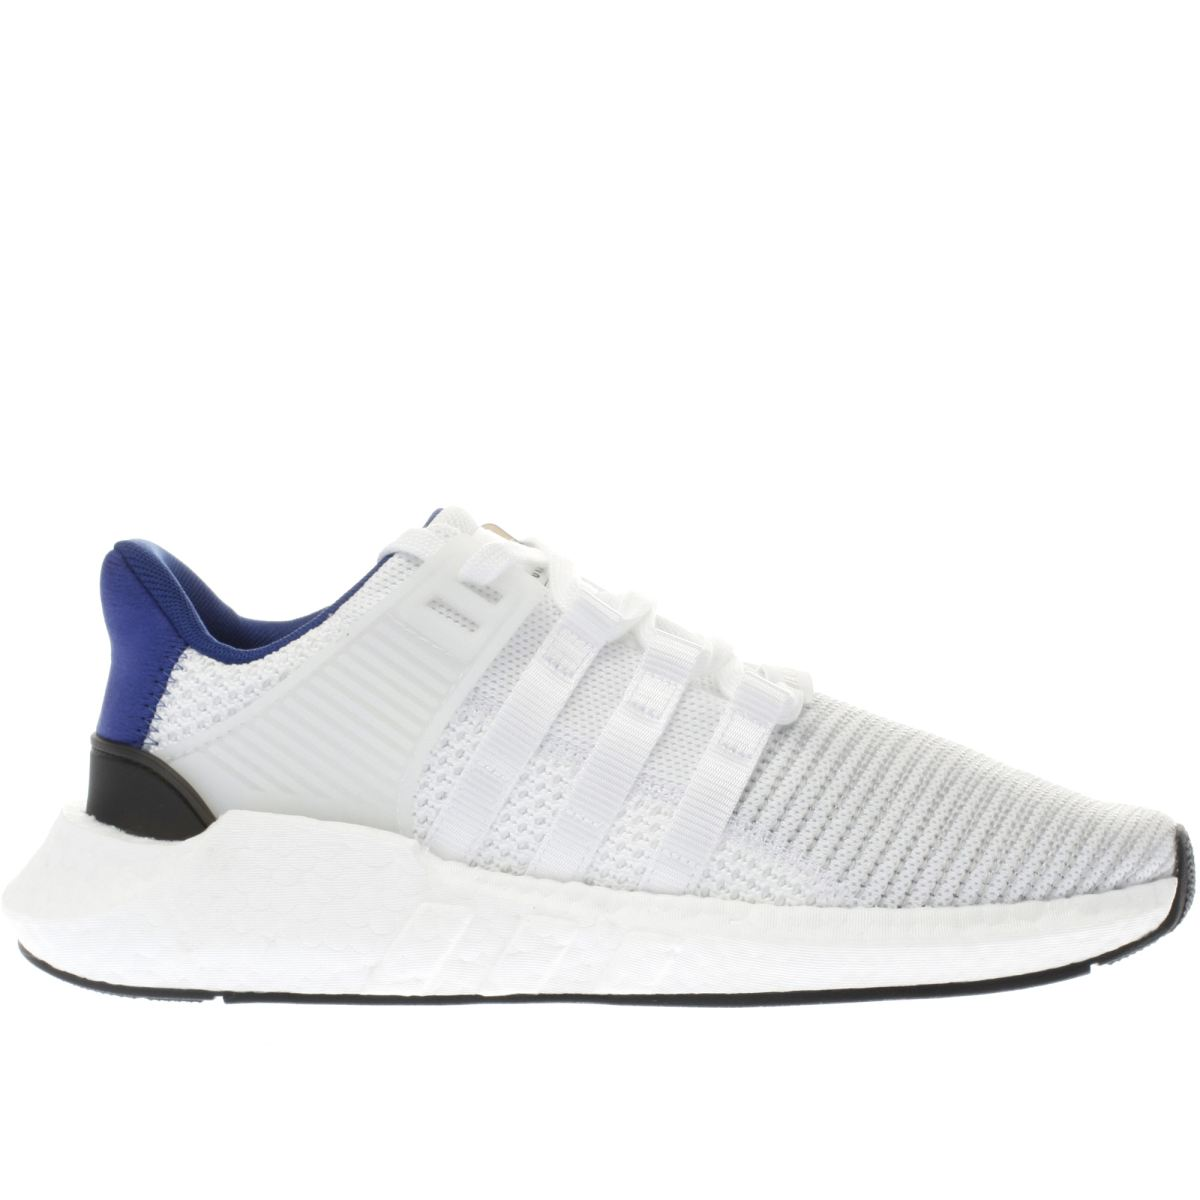 adidas white & navy eqt support 93/17 trainers